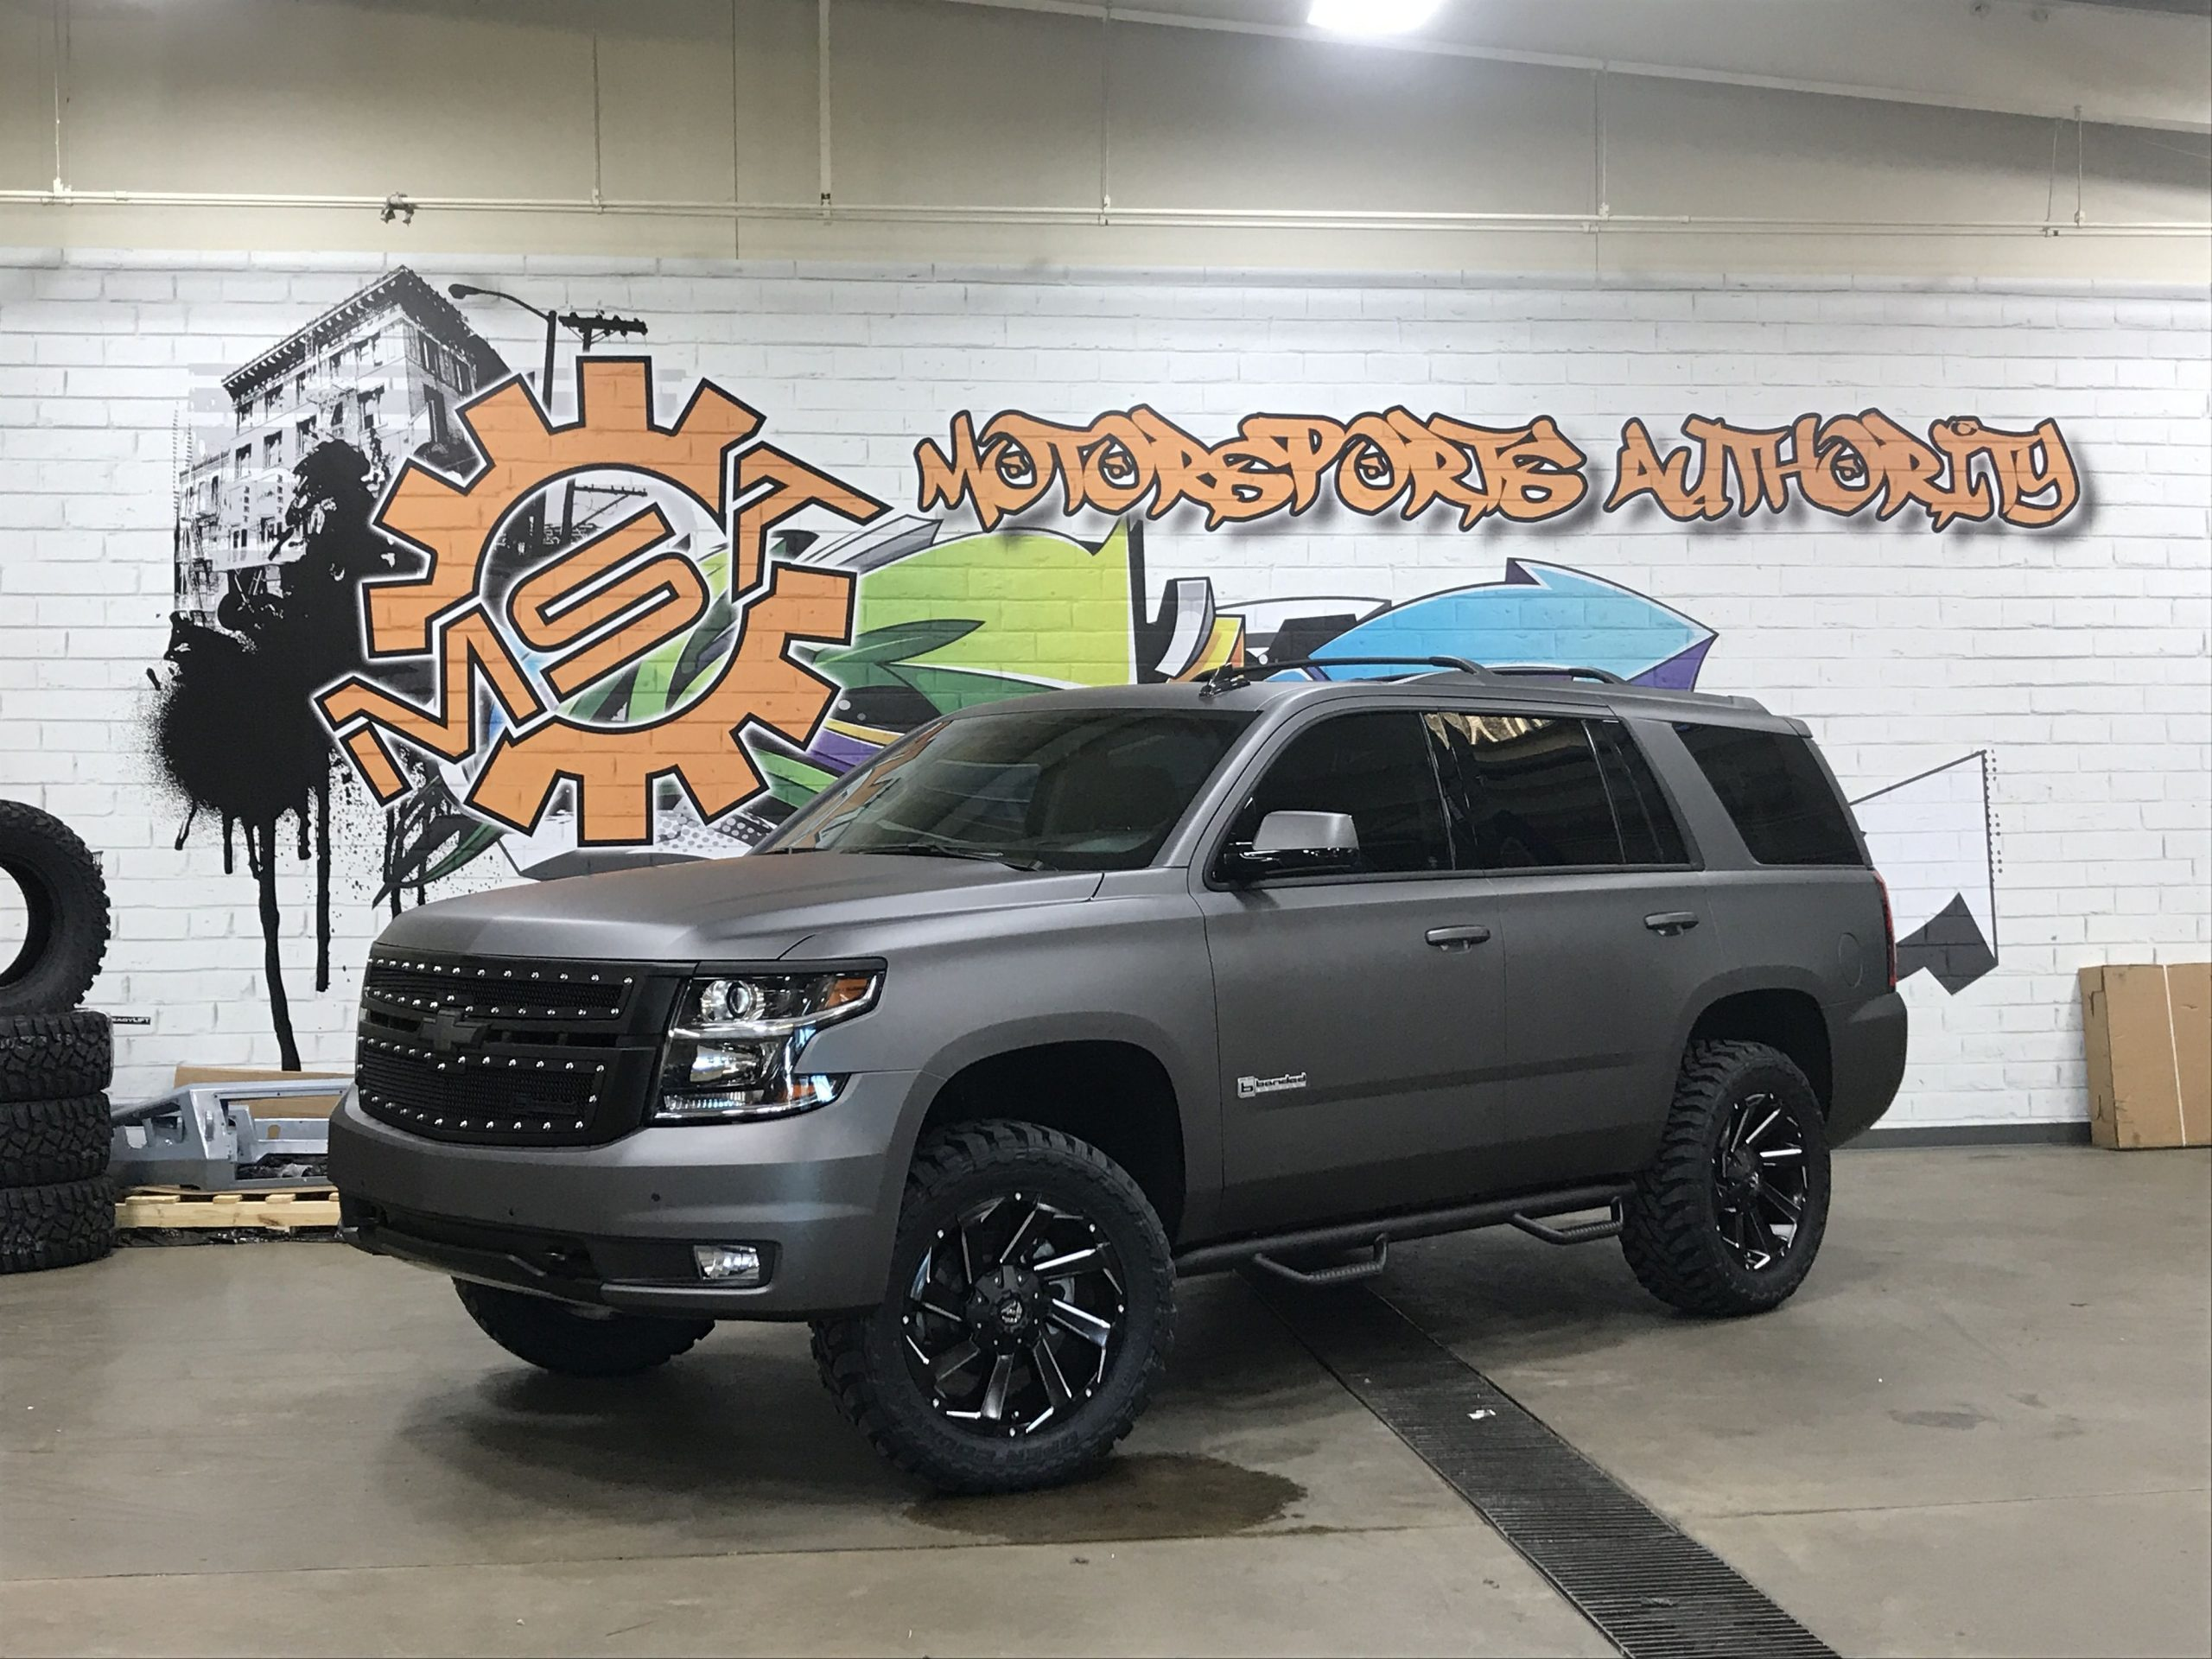 2017 Tahoe Wrapped In Avery Charcoal For Andrew Cashner 2022 Chevy Tahoe Cost, Images, Accessories